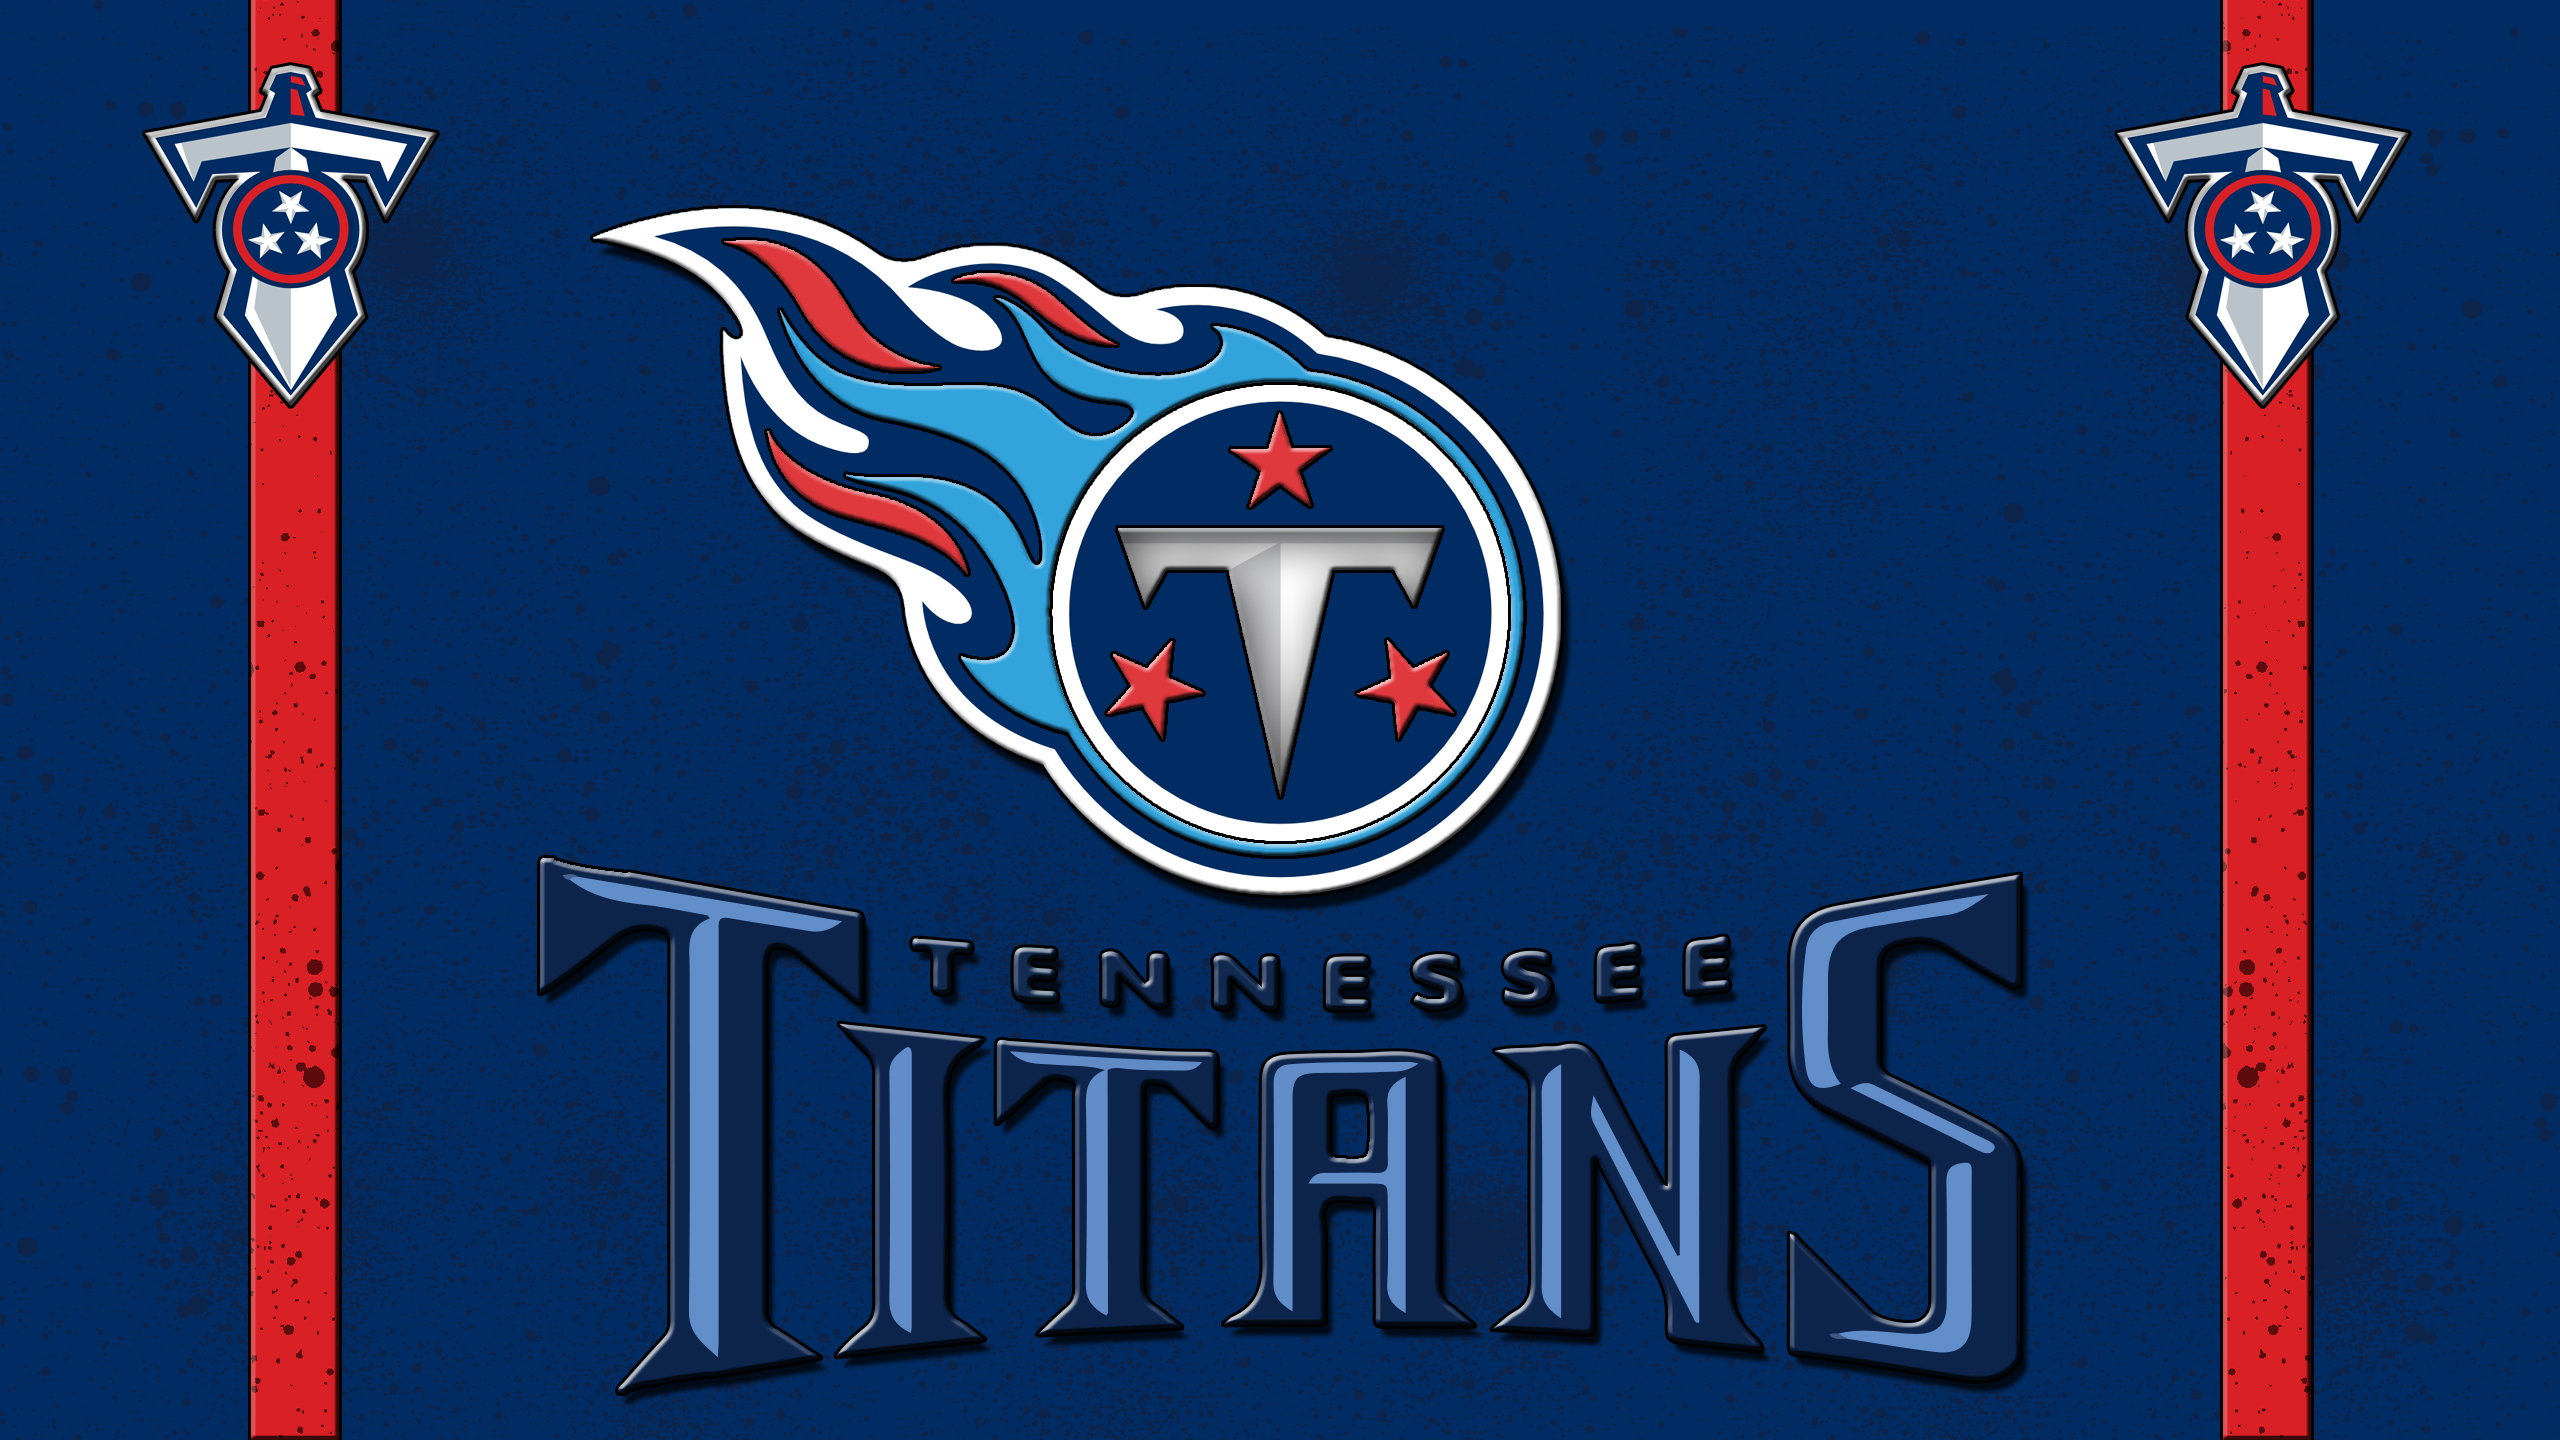 Tennessee Titans By Beaware8 On Deviantart